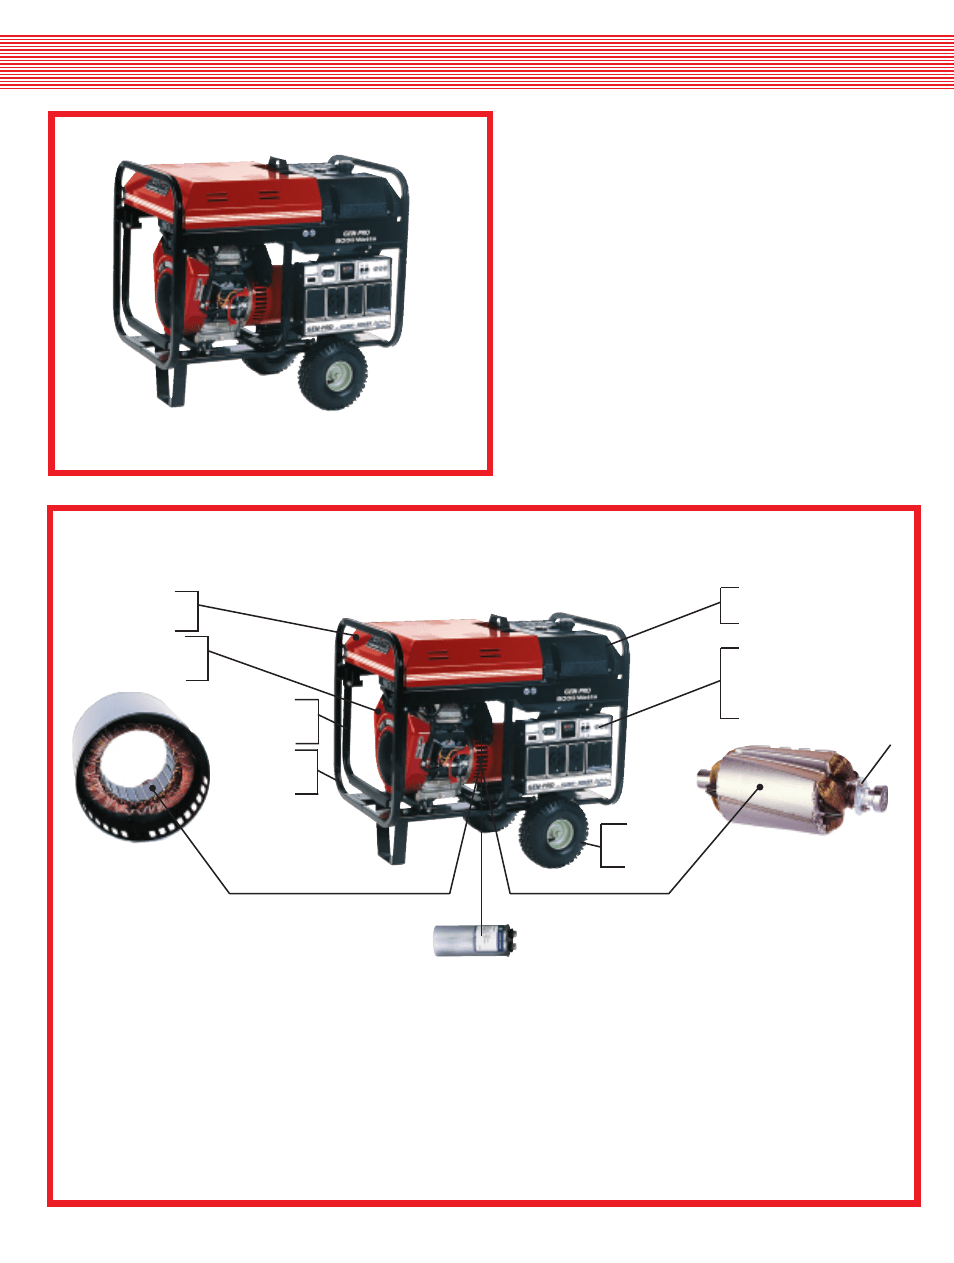 medium resolution of kleen power generators why is gen pro unique and different from the rest gillette portable generators user manual page 3 6